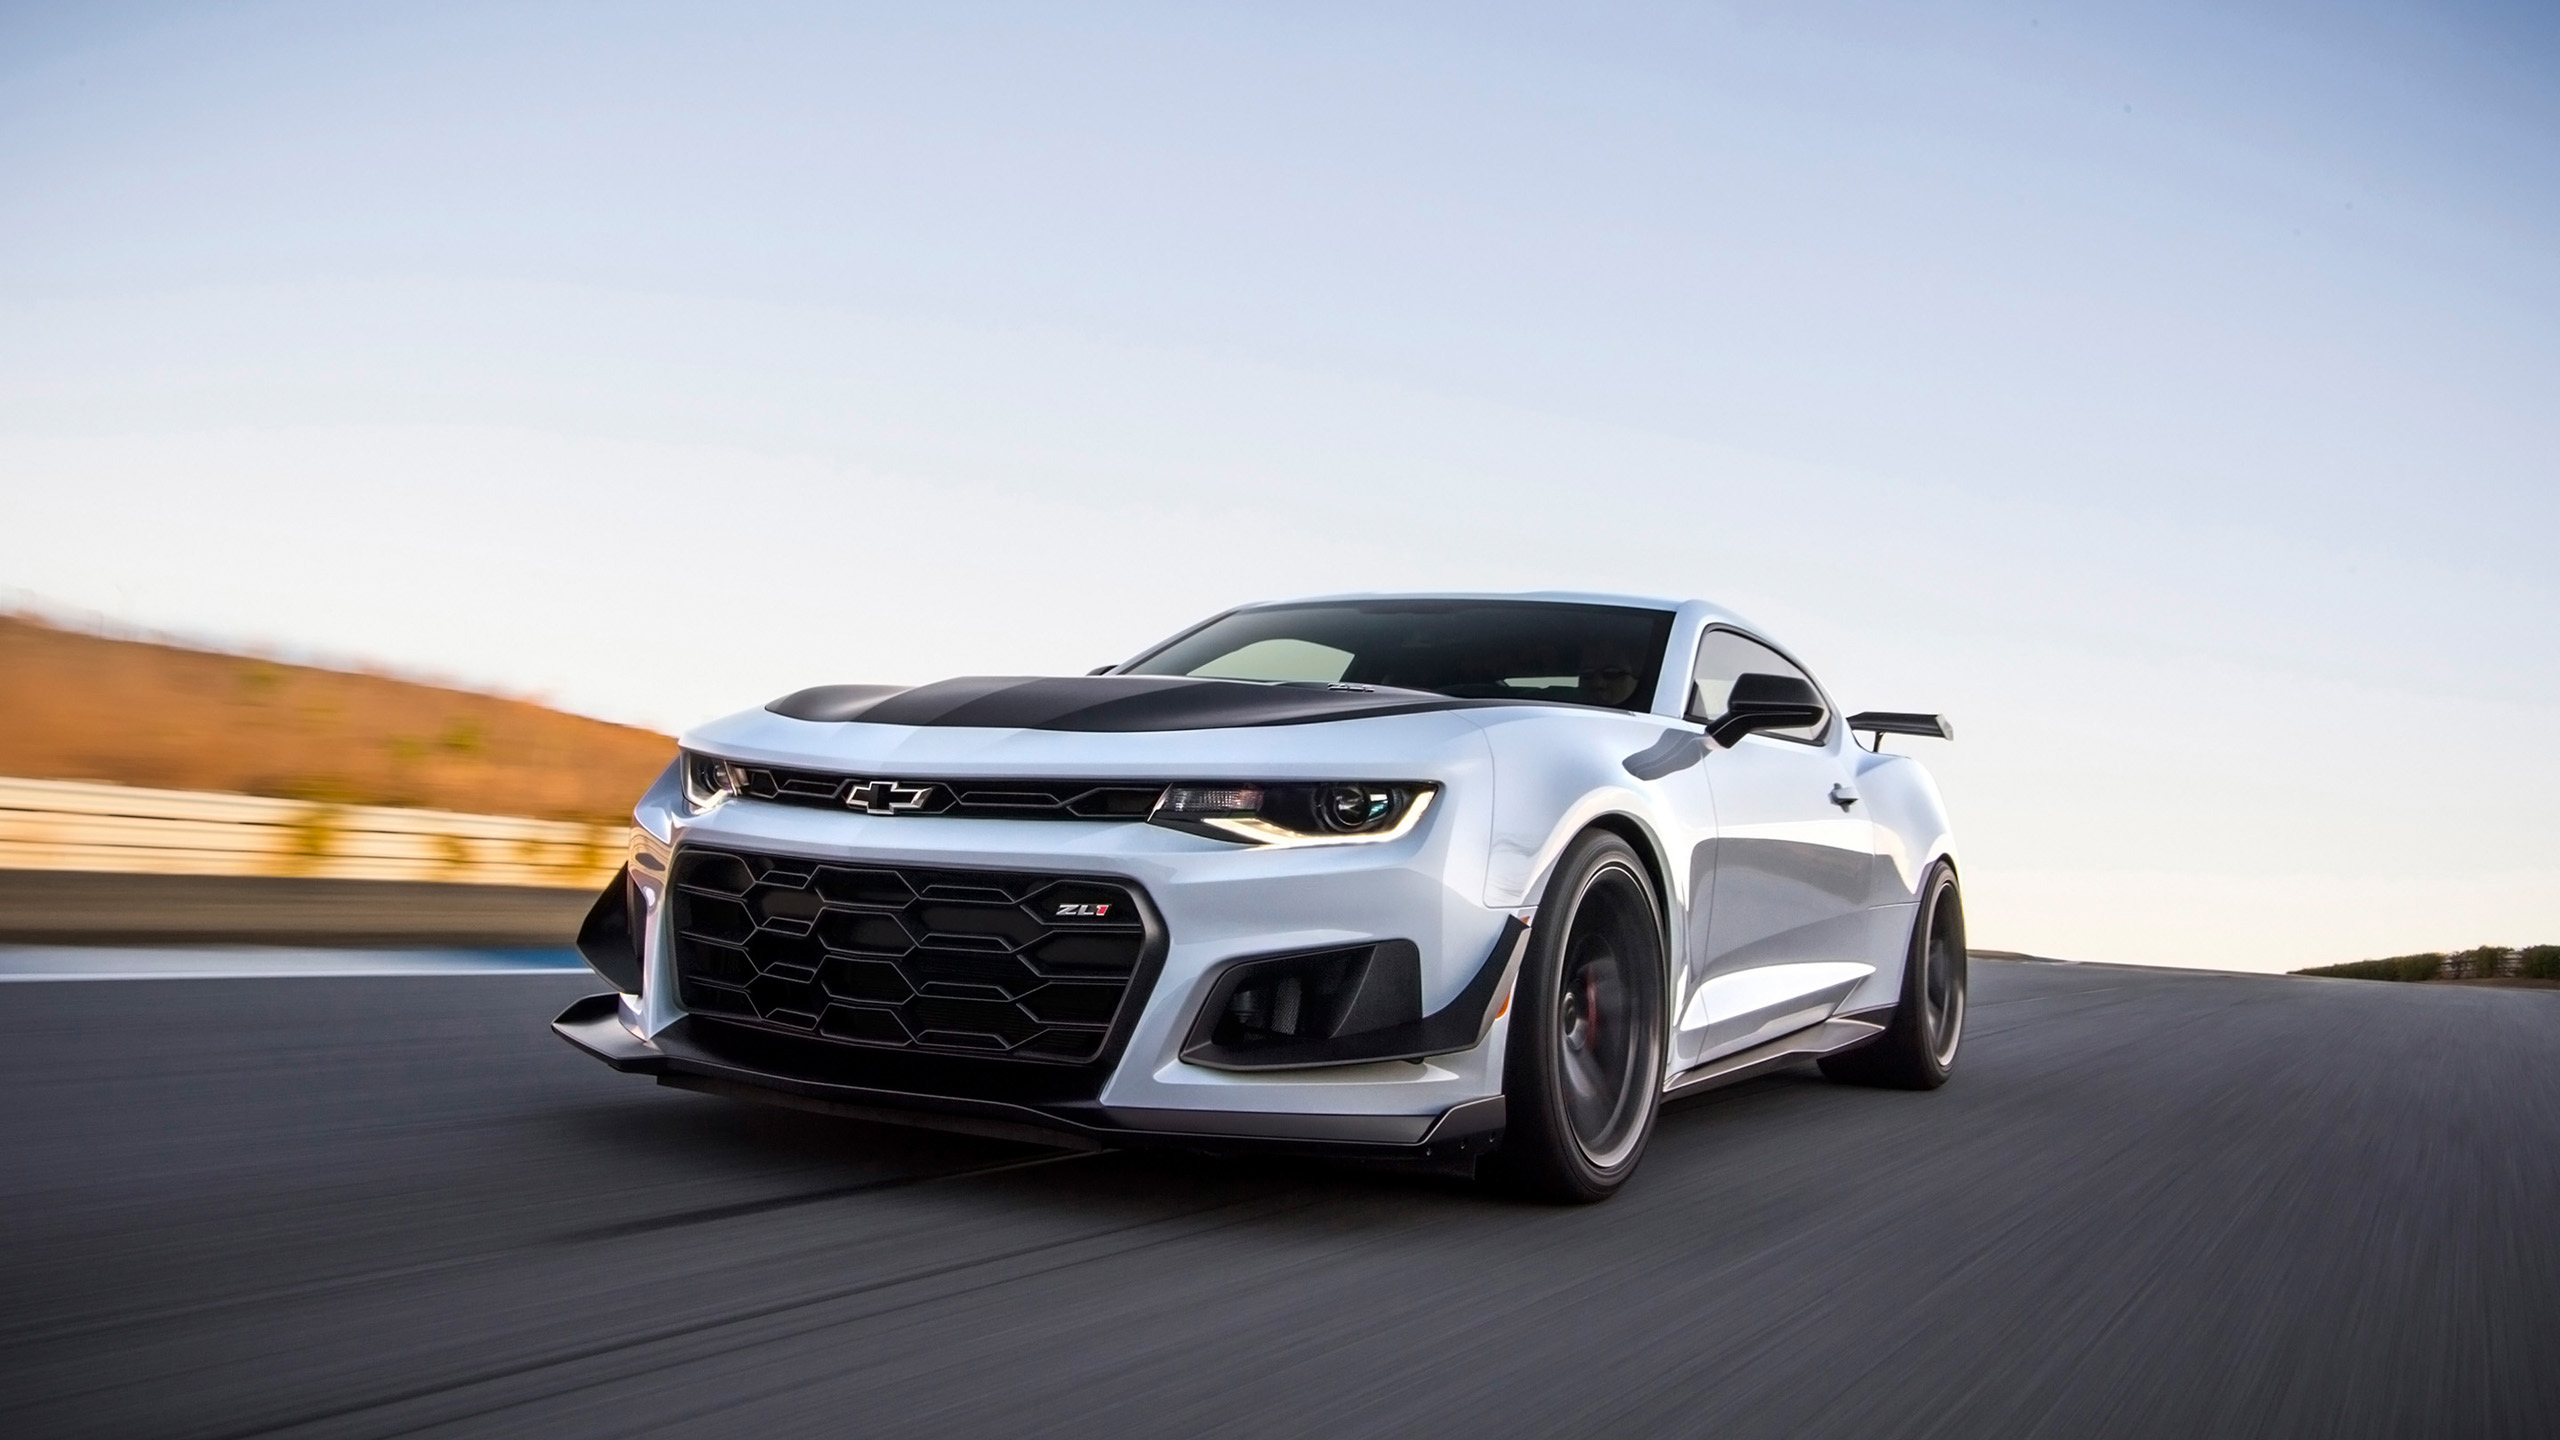 2018 Chevrolet Camaro Zl1 1le Wallpaper Hd Car